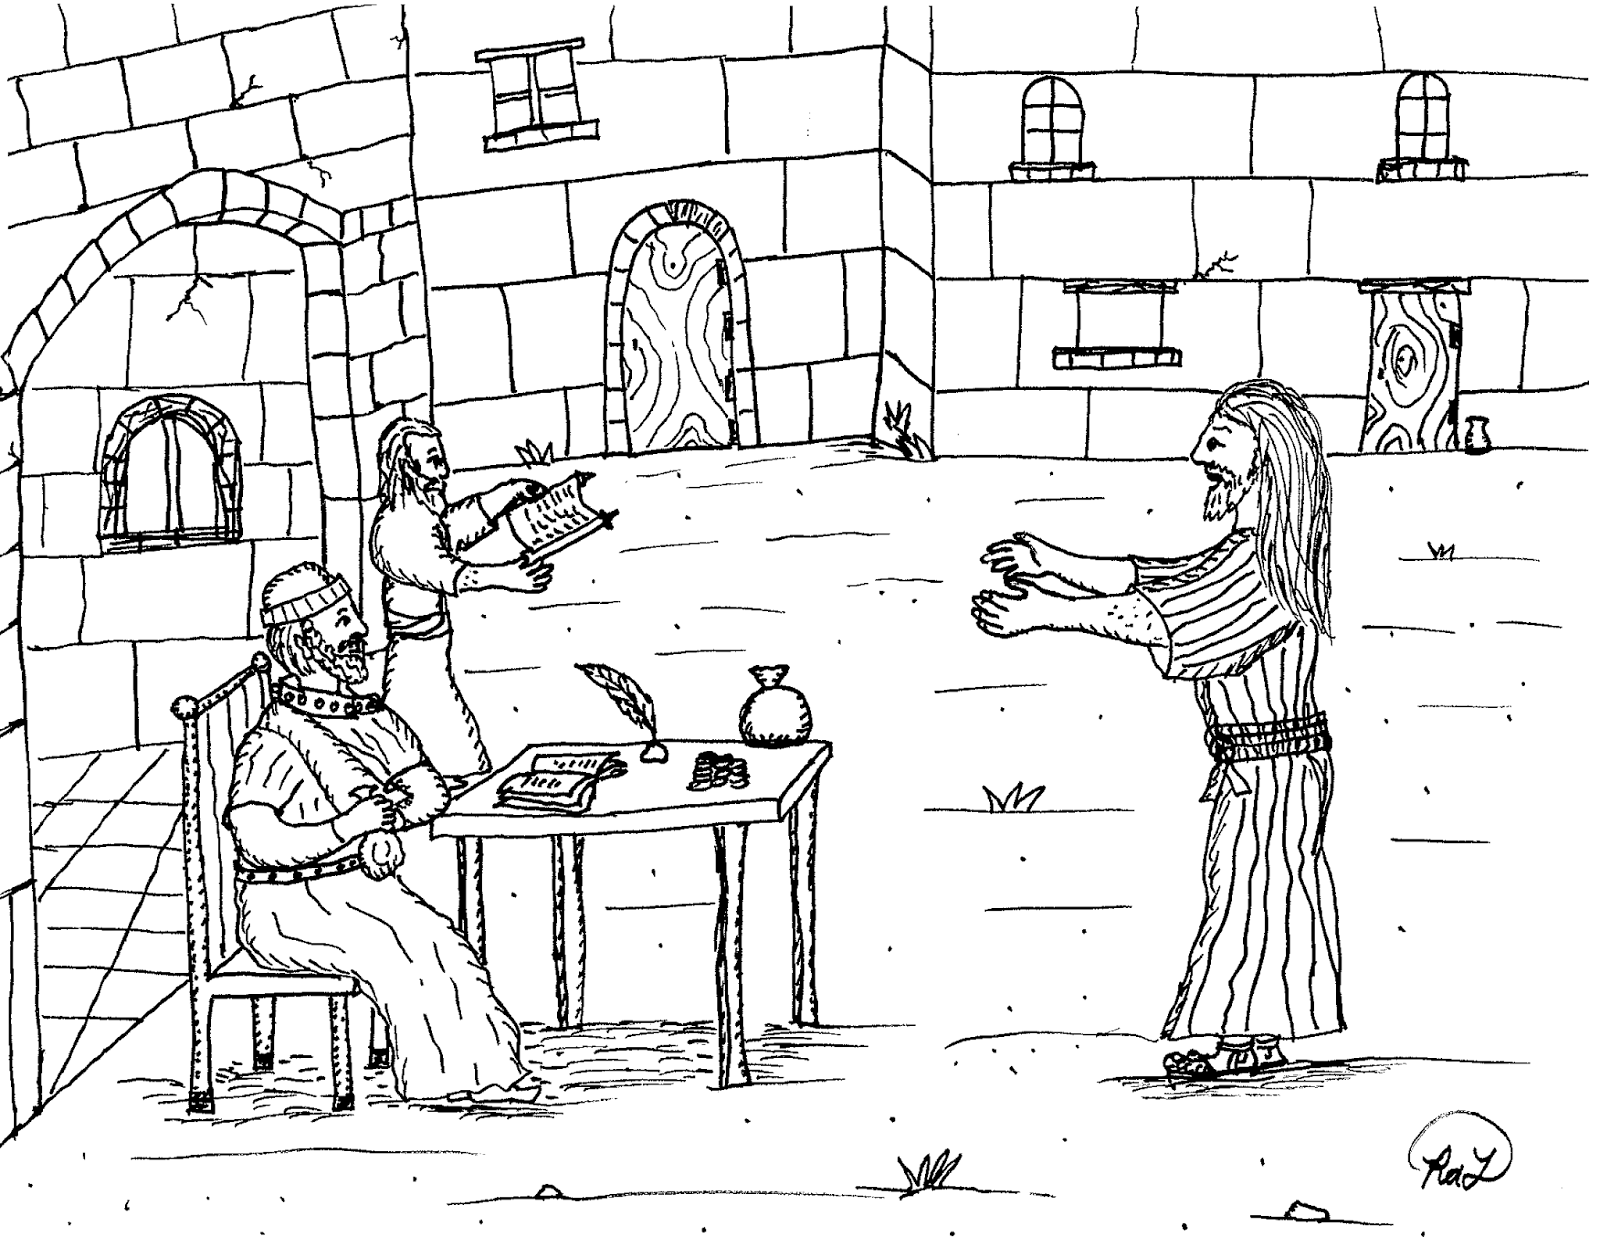 Robin's Great Coloring Pages: Apostle Matthew